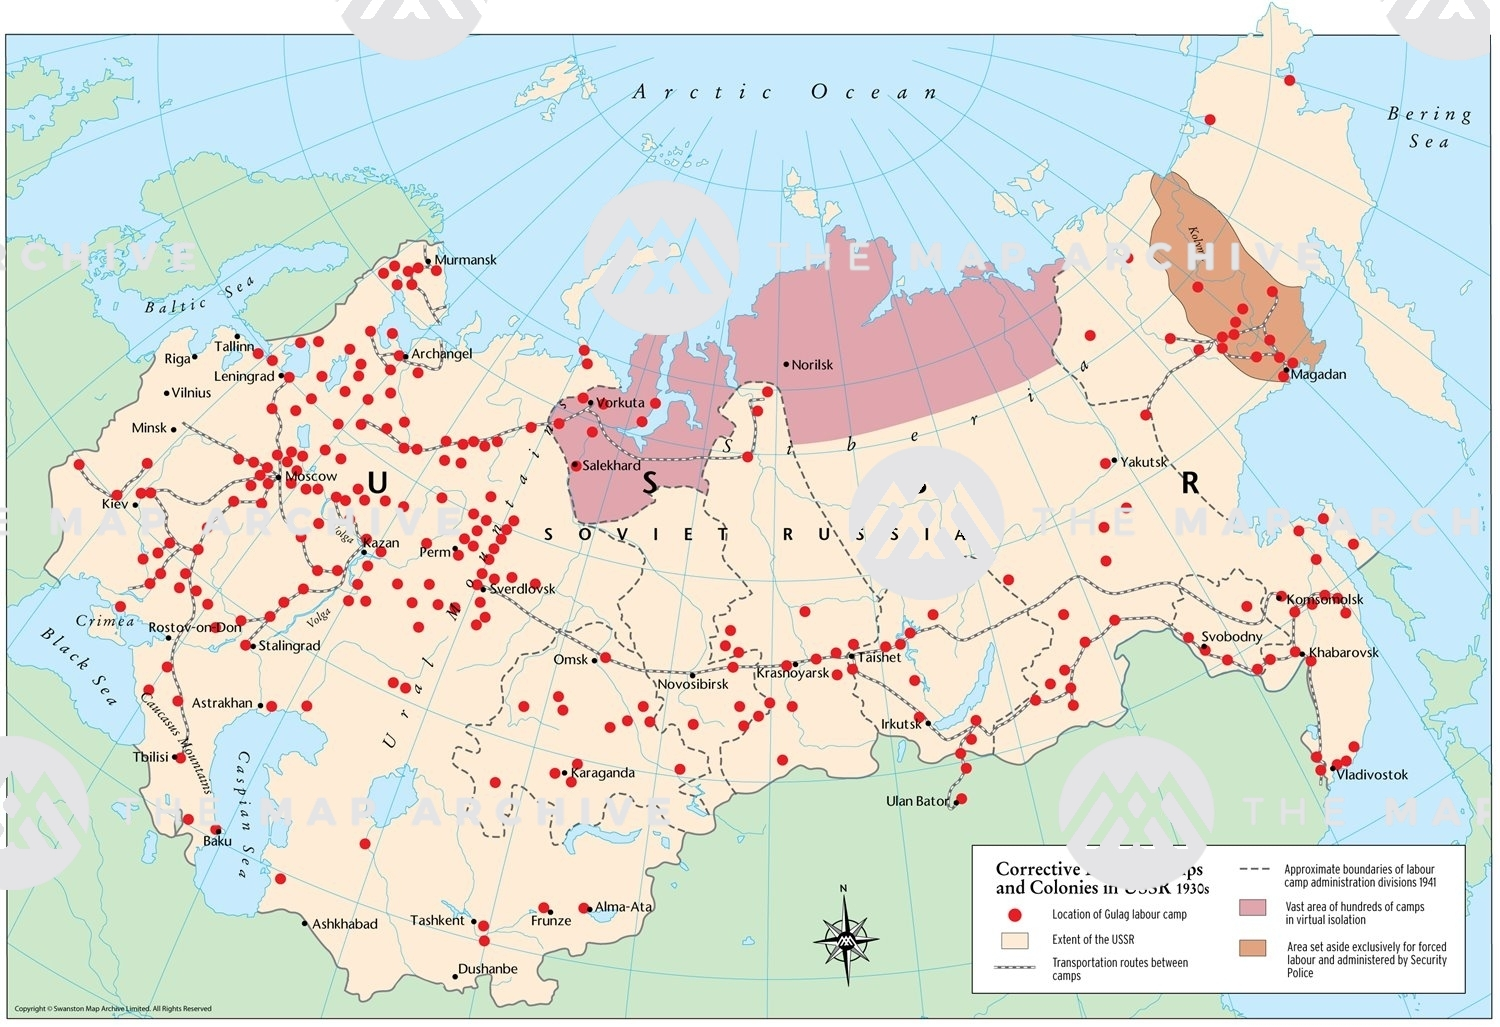 Picture of: Corrective Labour Camps And Colonies In Ussr 1930s